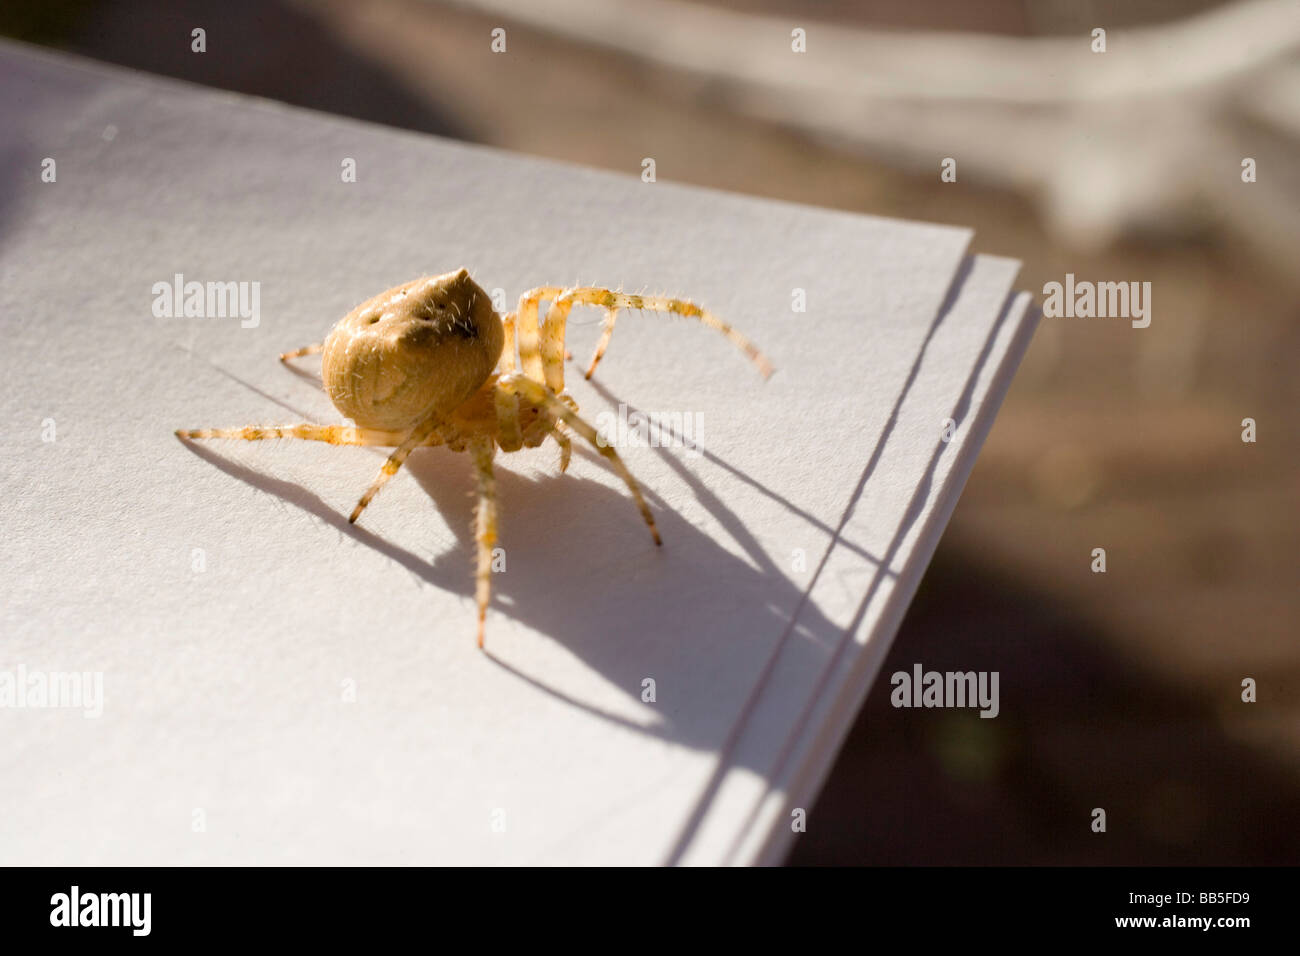 large crab spider walking on paper - Stock Image